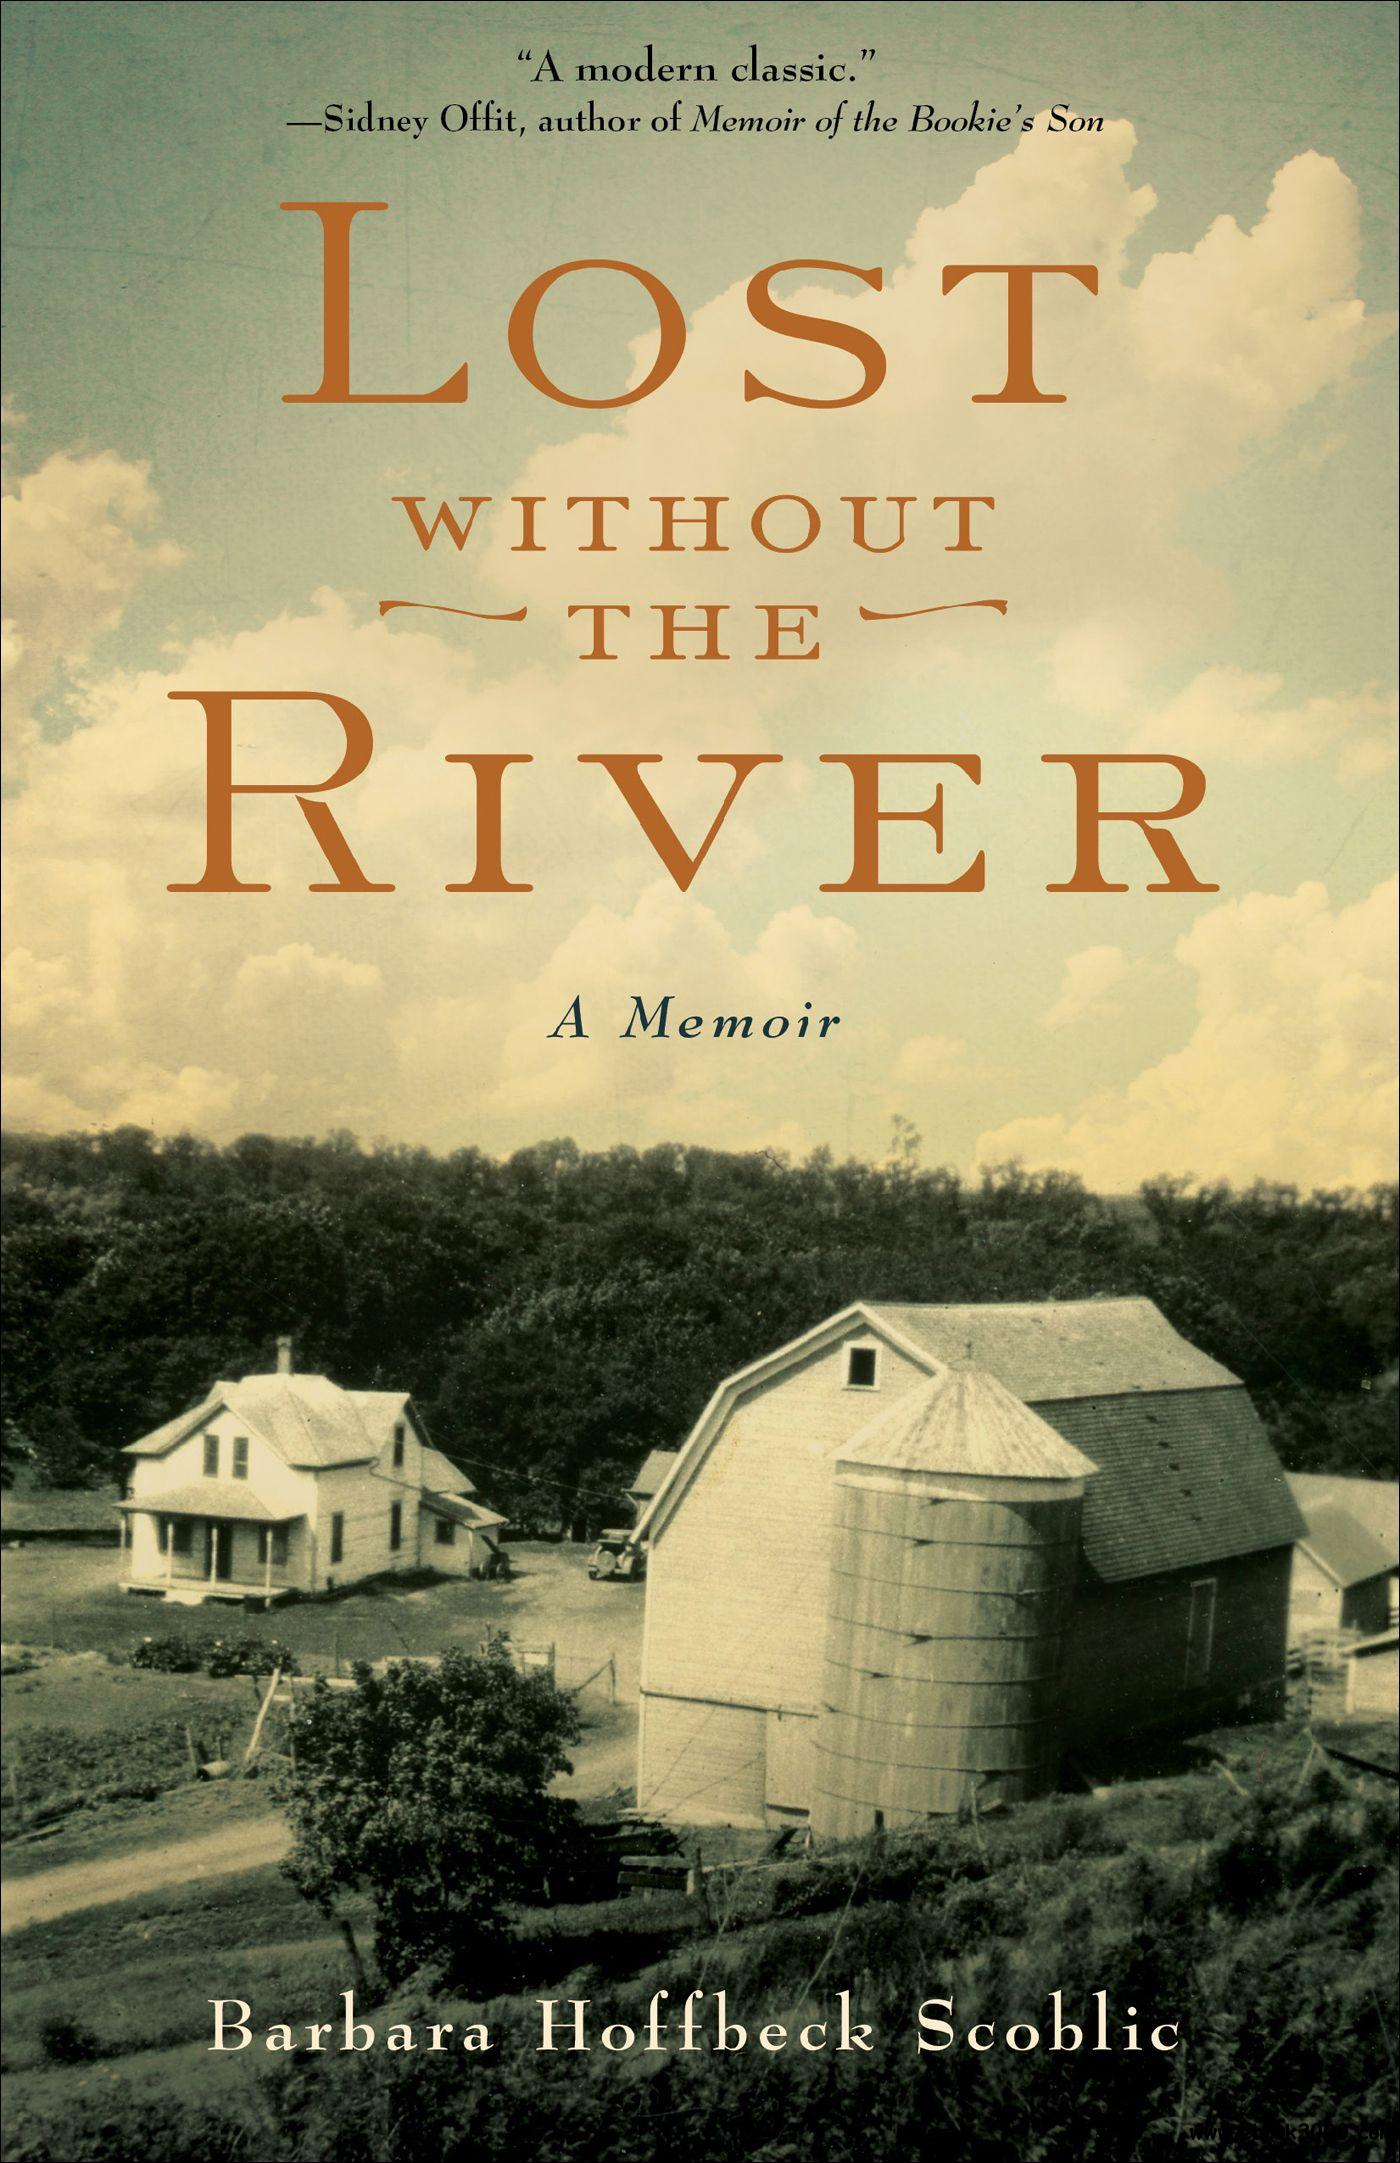 Lost Without the River: A Memoir